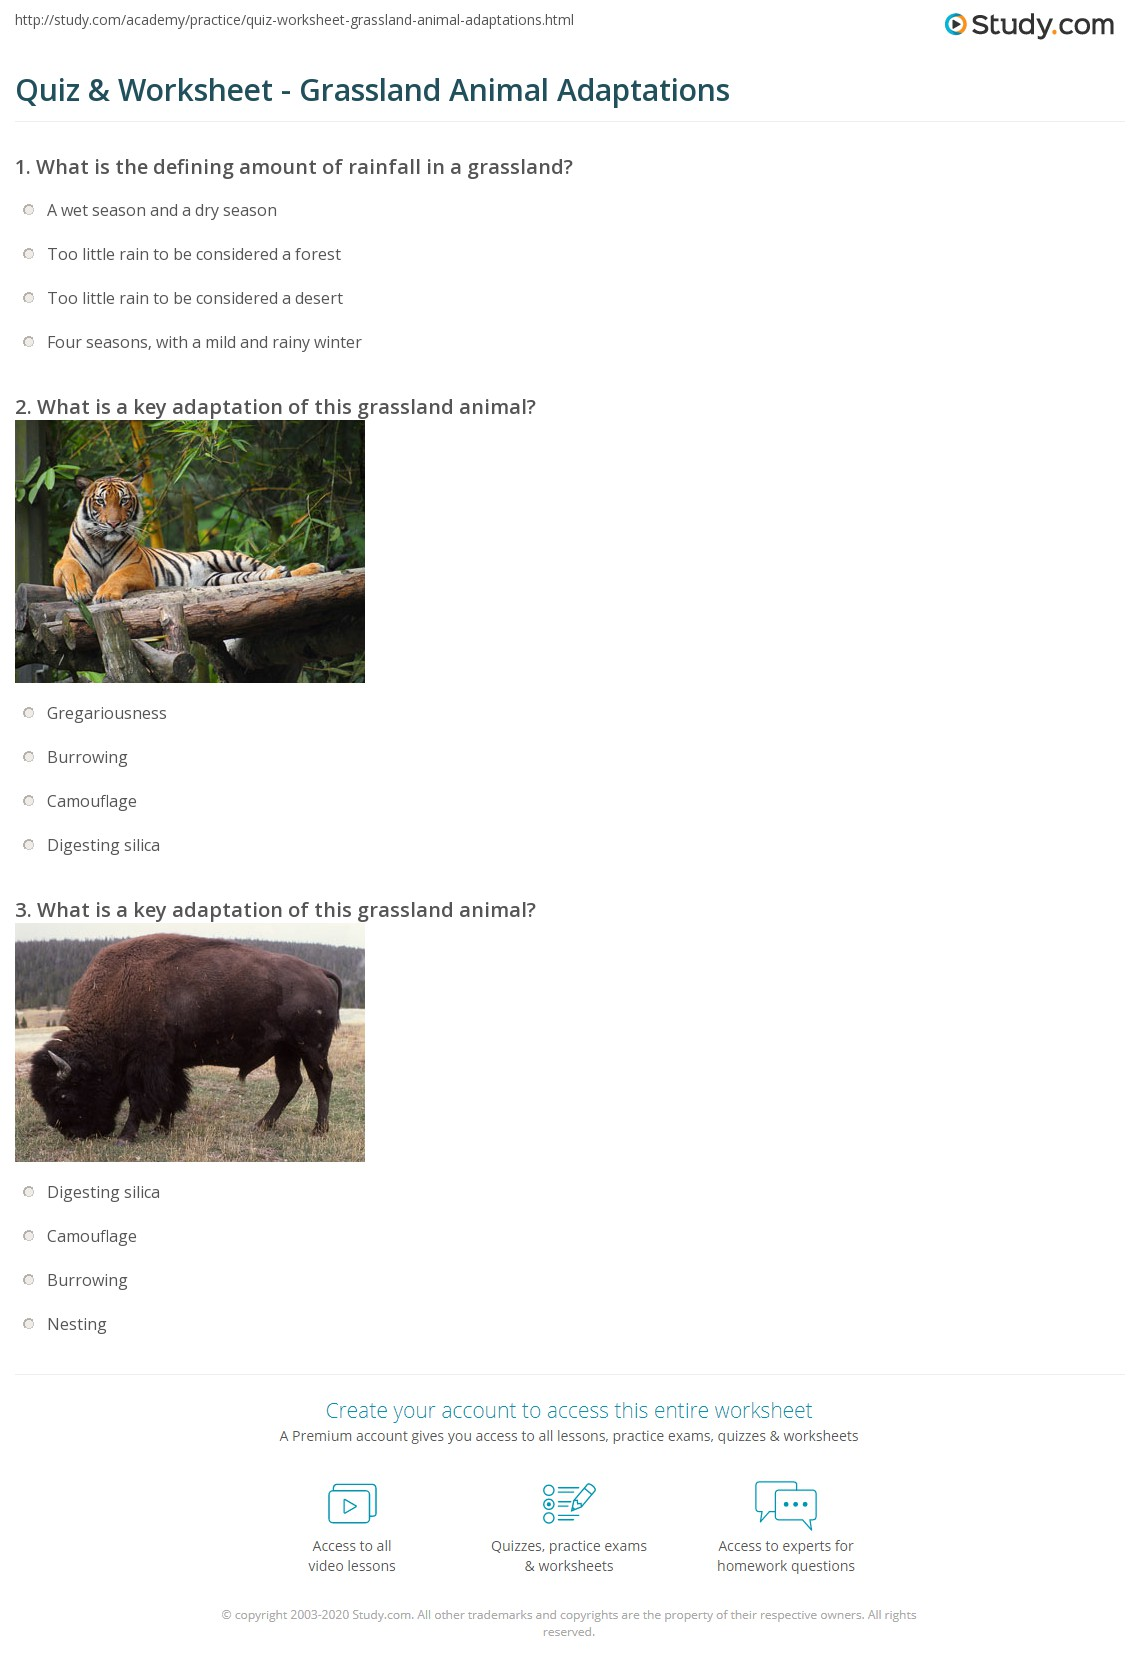 Quiz Worksheet Grassland Animal Adaptations Study